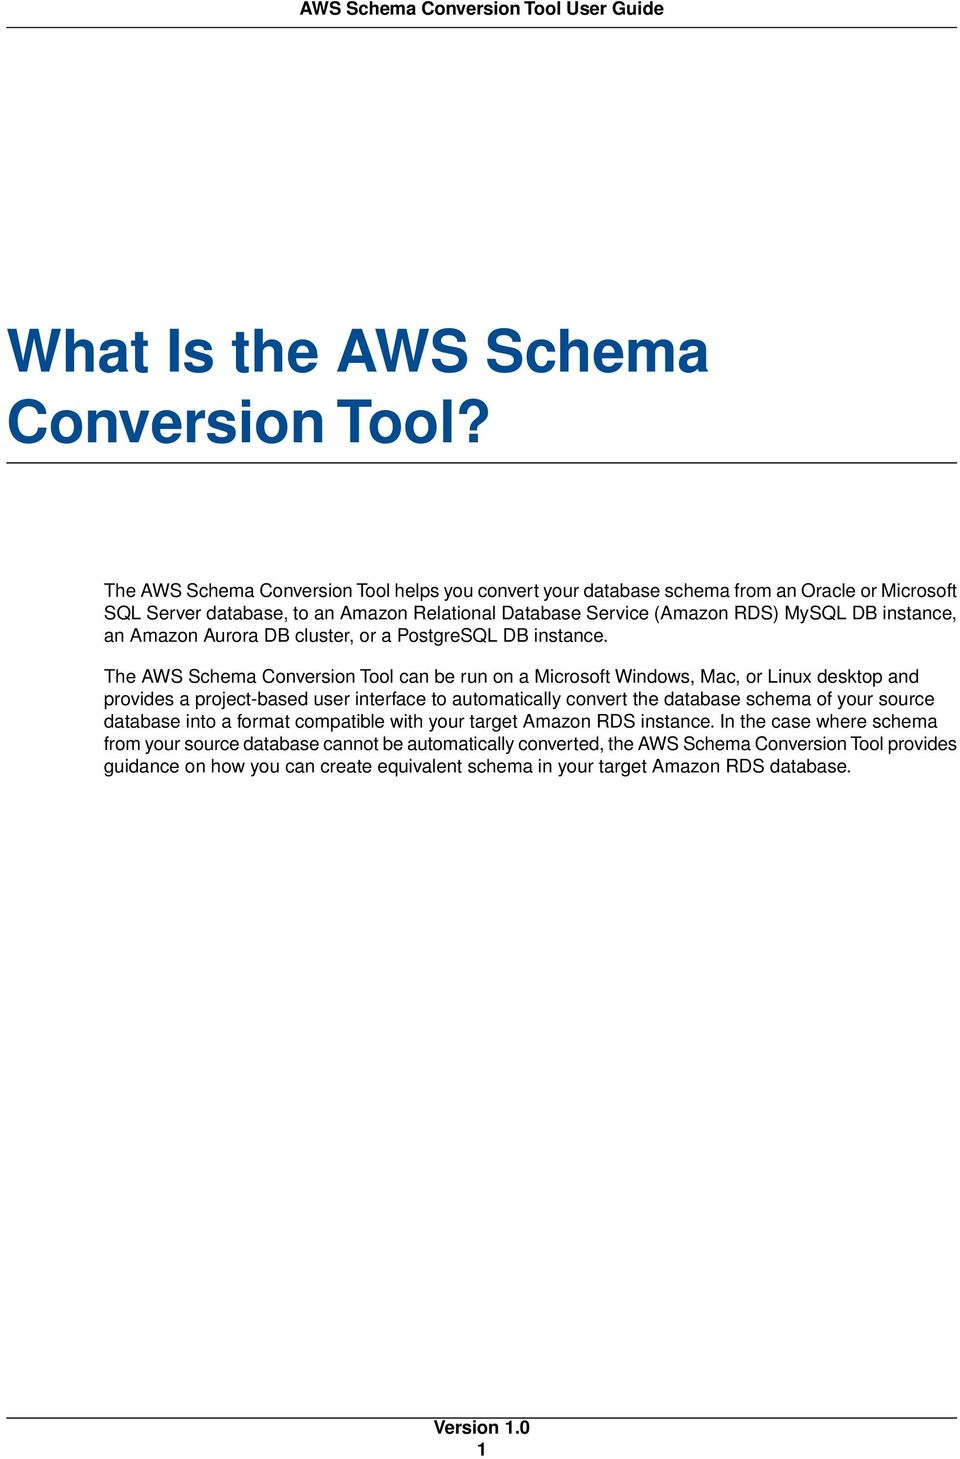 Aws schema conversion tool user guide version pdf an amazon aurora db cluster or a postgresql db instance ccuart Choice Image